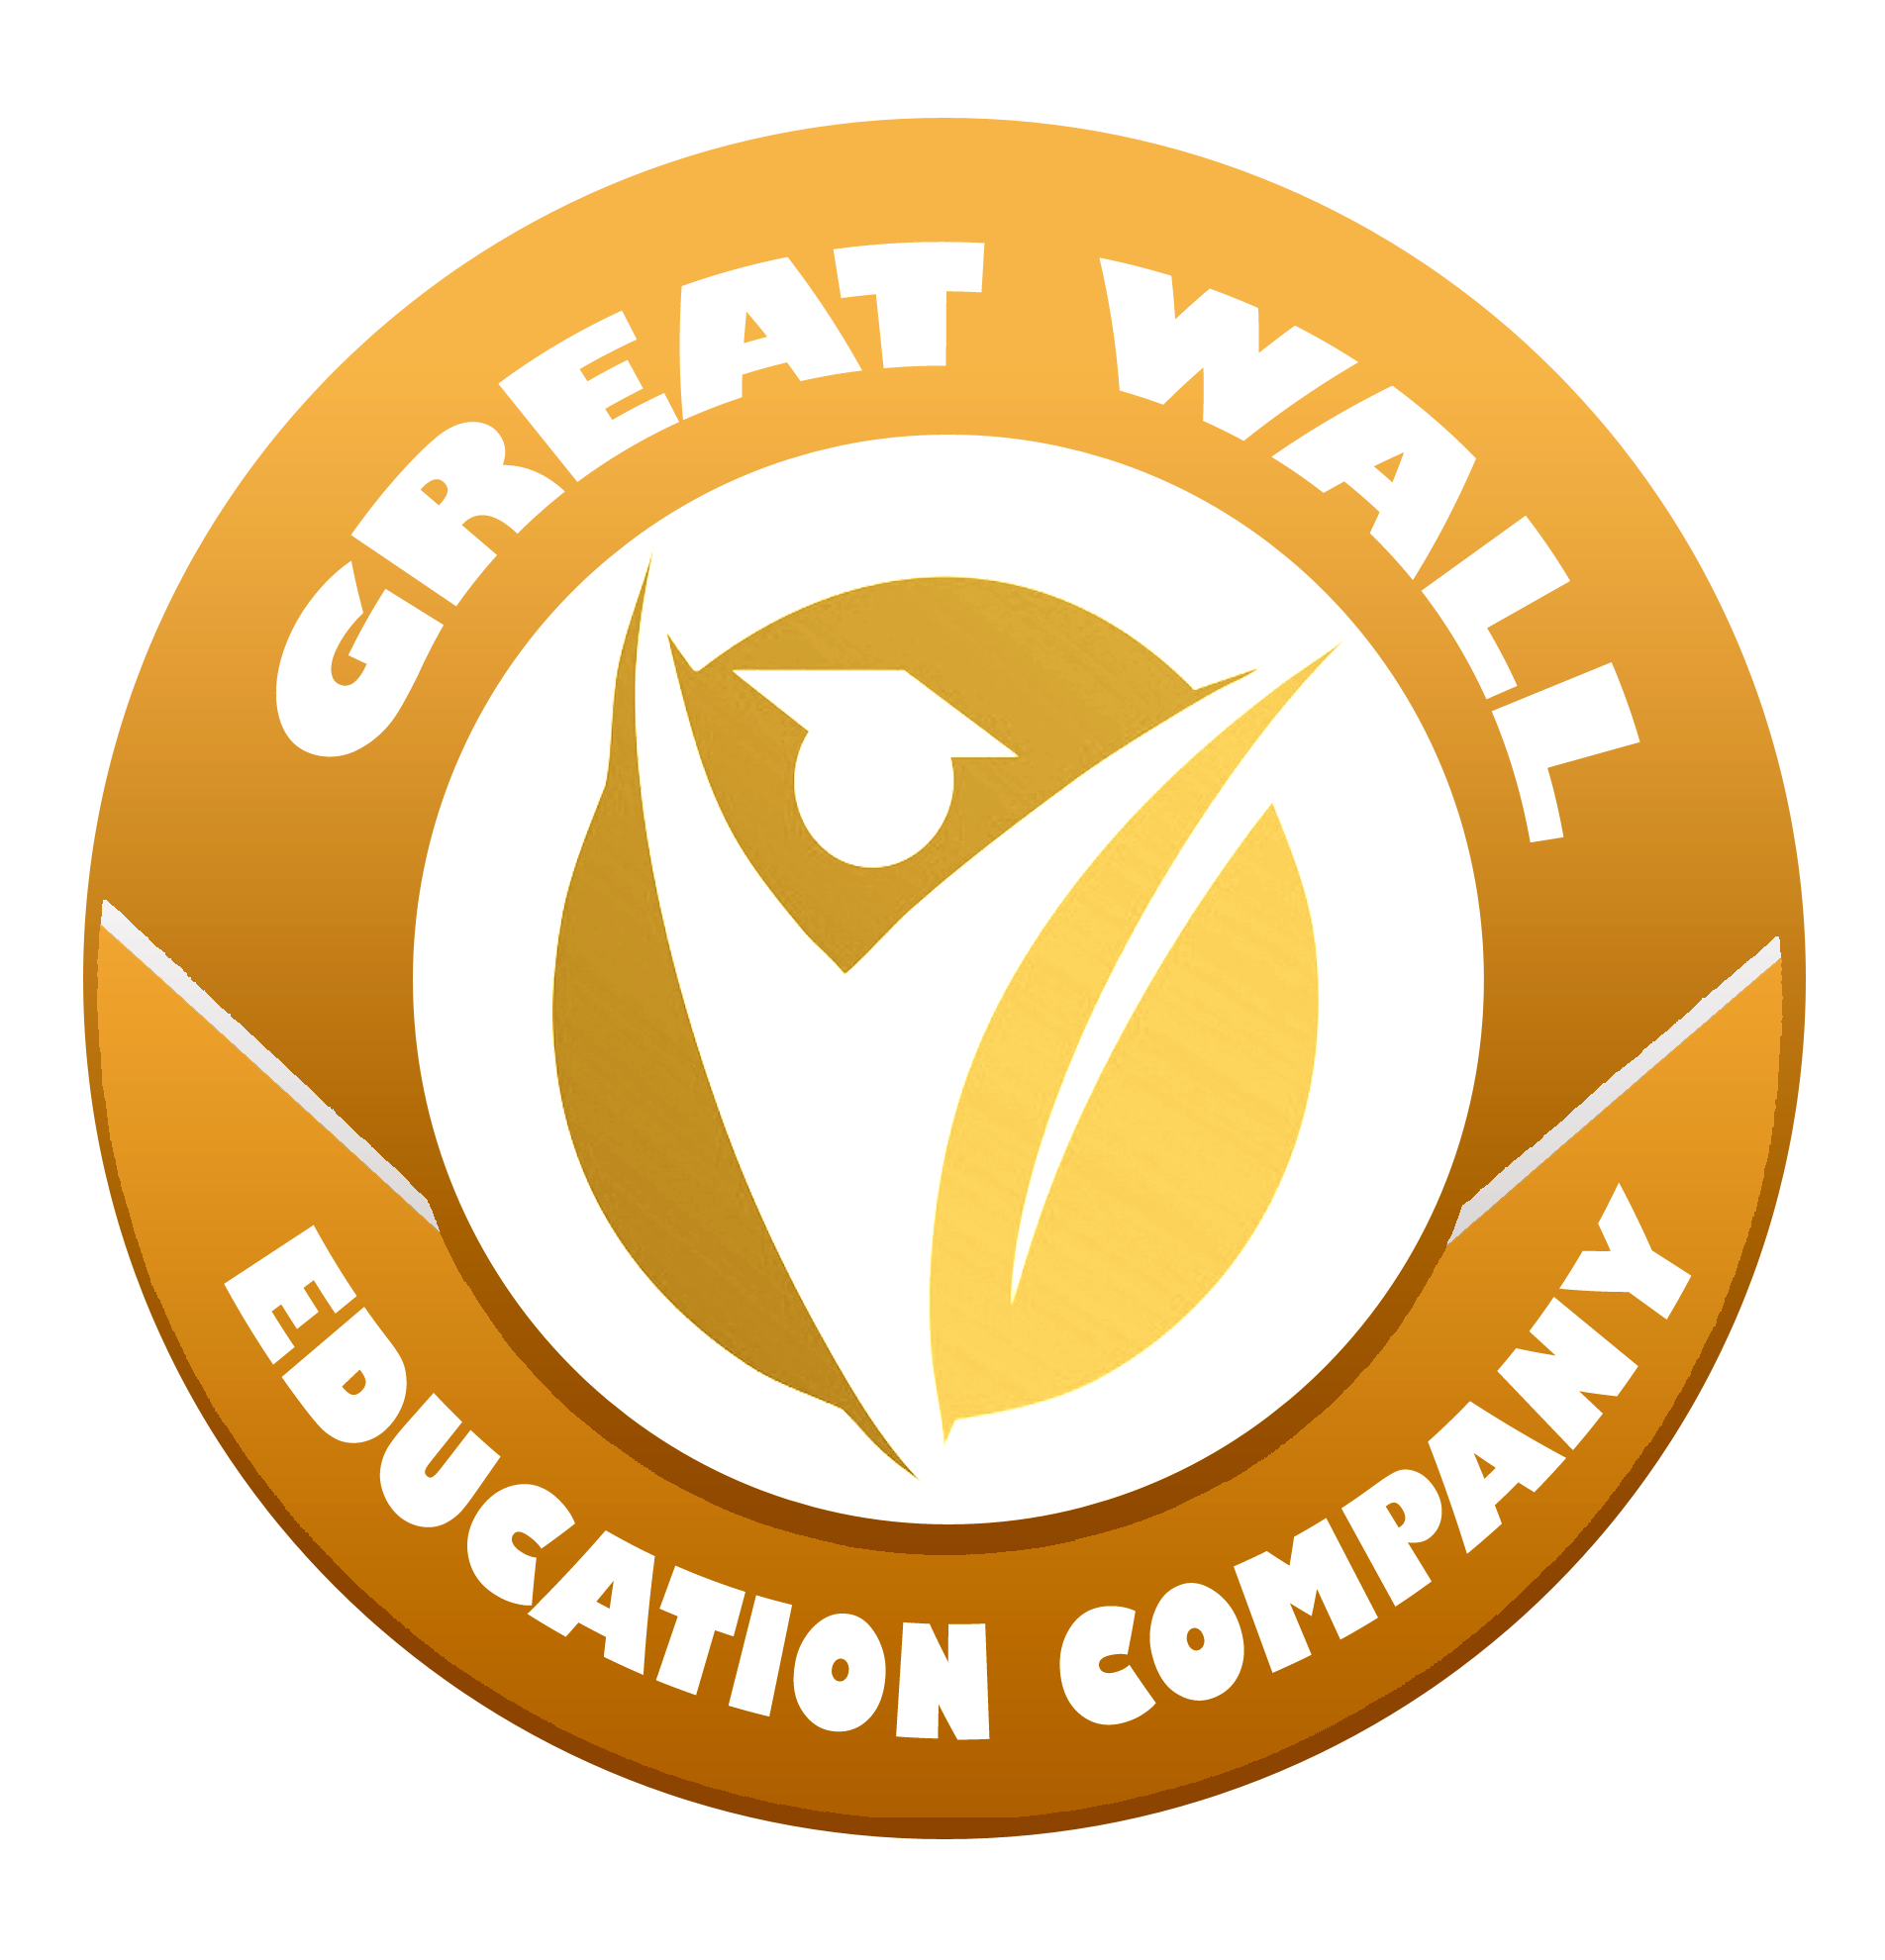 Great Wall Education Company